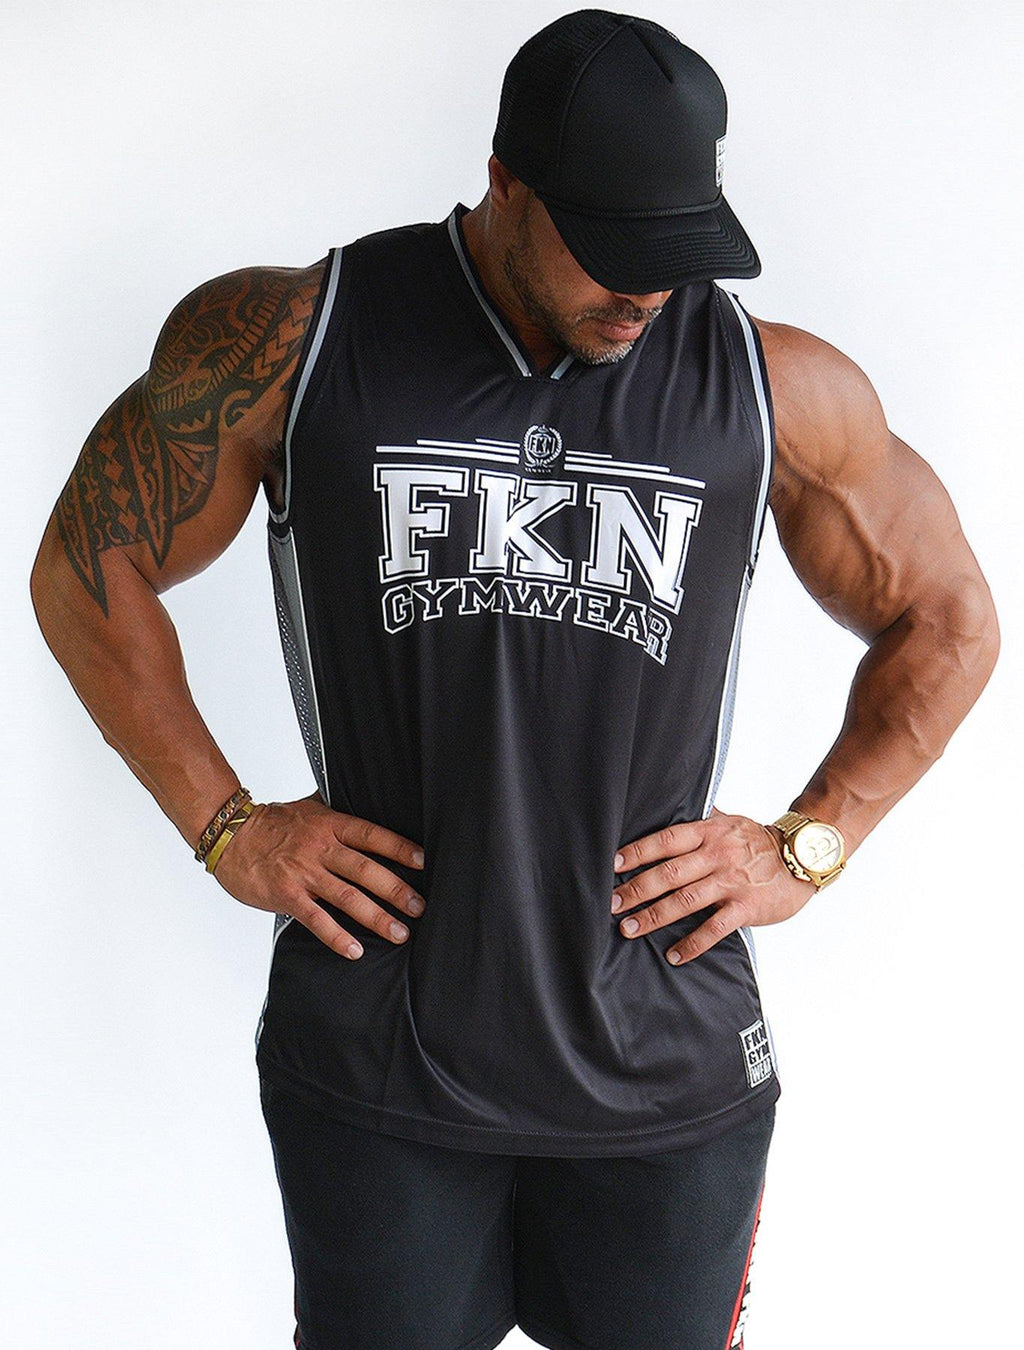 Dominate | Men's Training Jersey - FKN Gym Wear